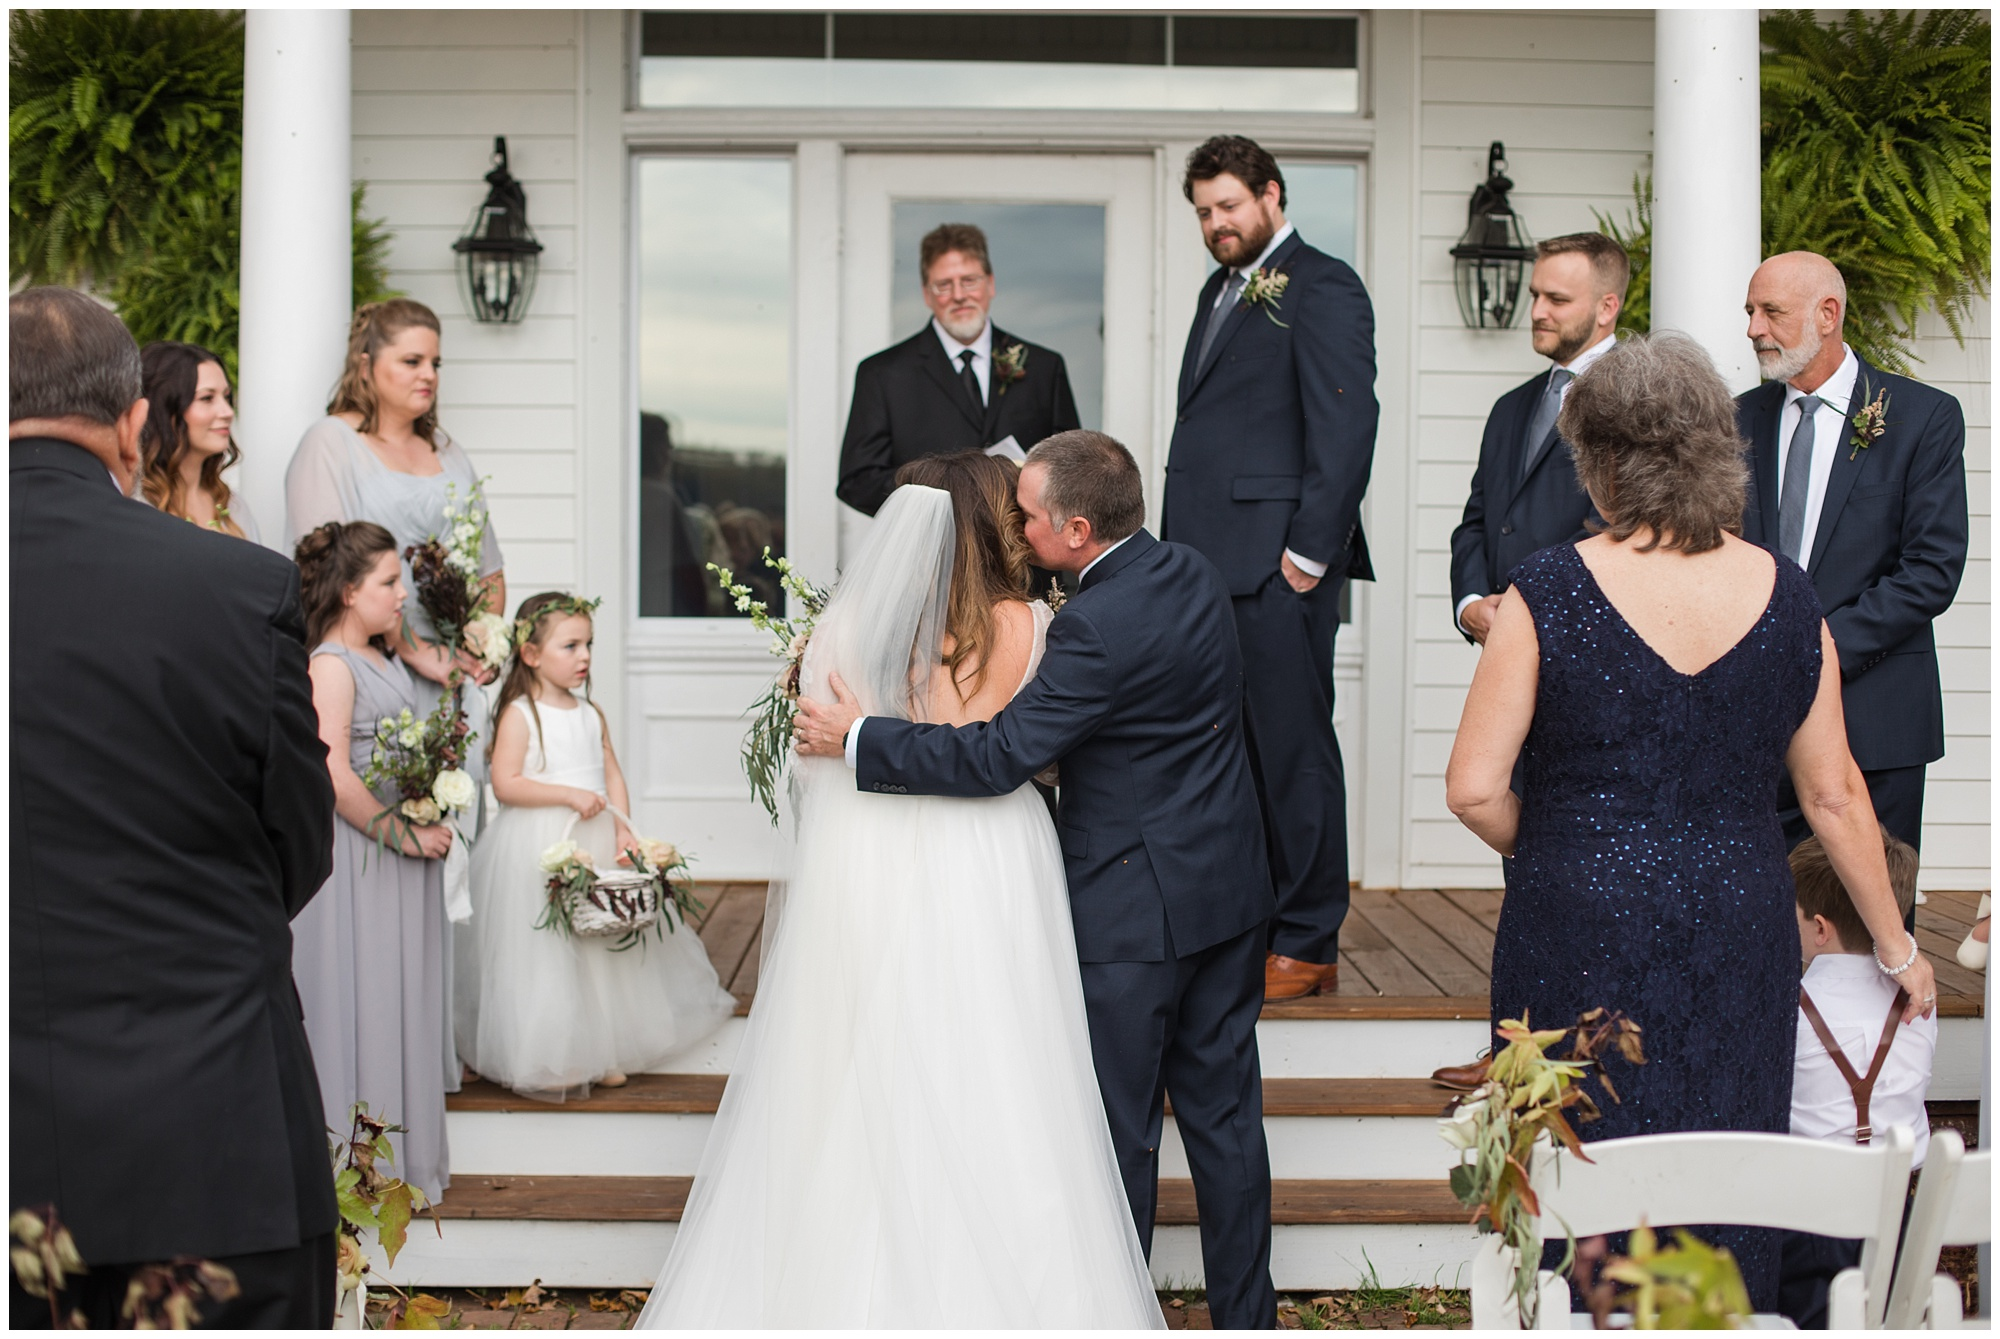 BROTHER GIVING AWAY BRIDE